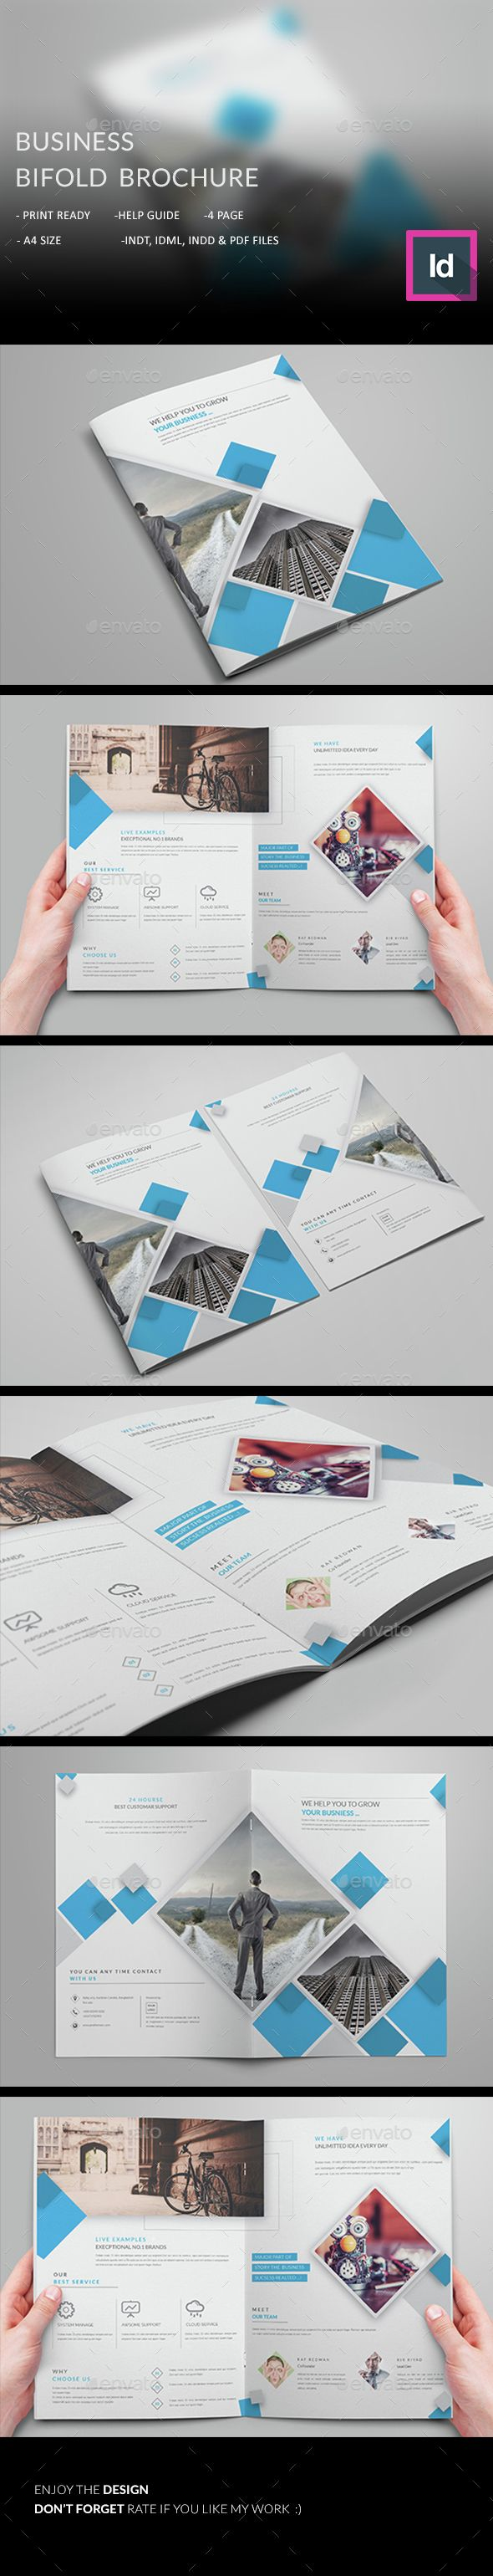 Business Bifold Brochure Template InDesign INDD. Download here: http://graphicriver.net/item/business-bifold-brochure-/14764483?ref=ksioks